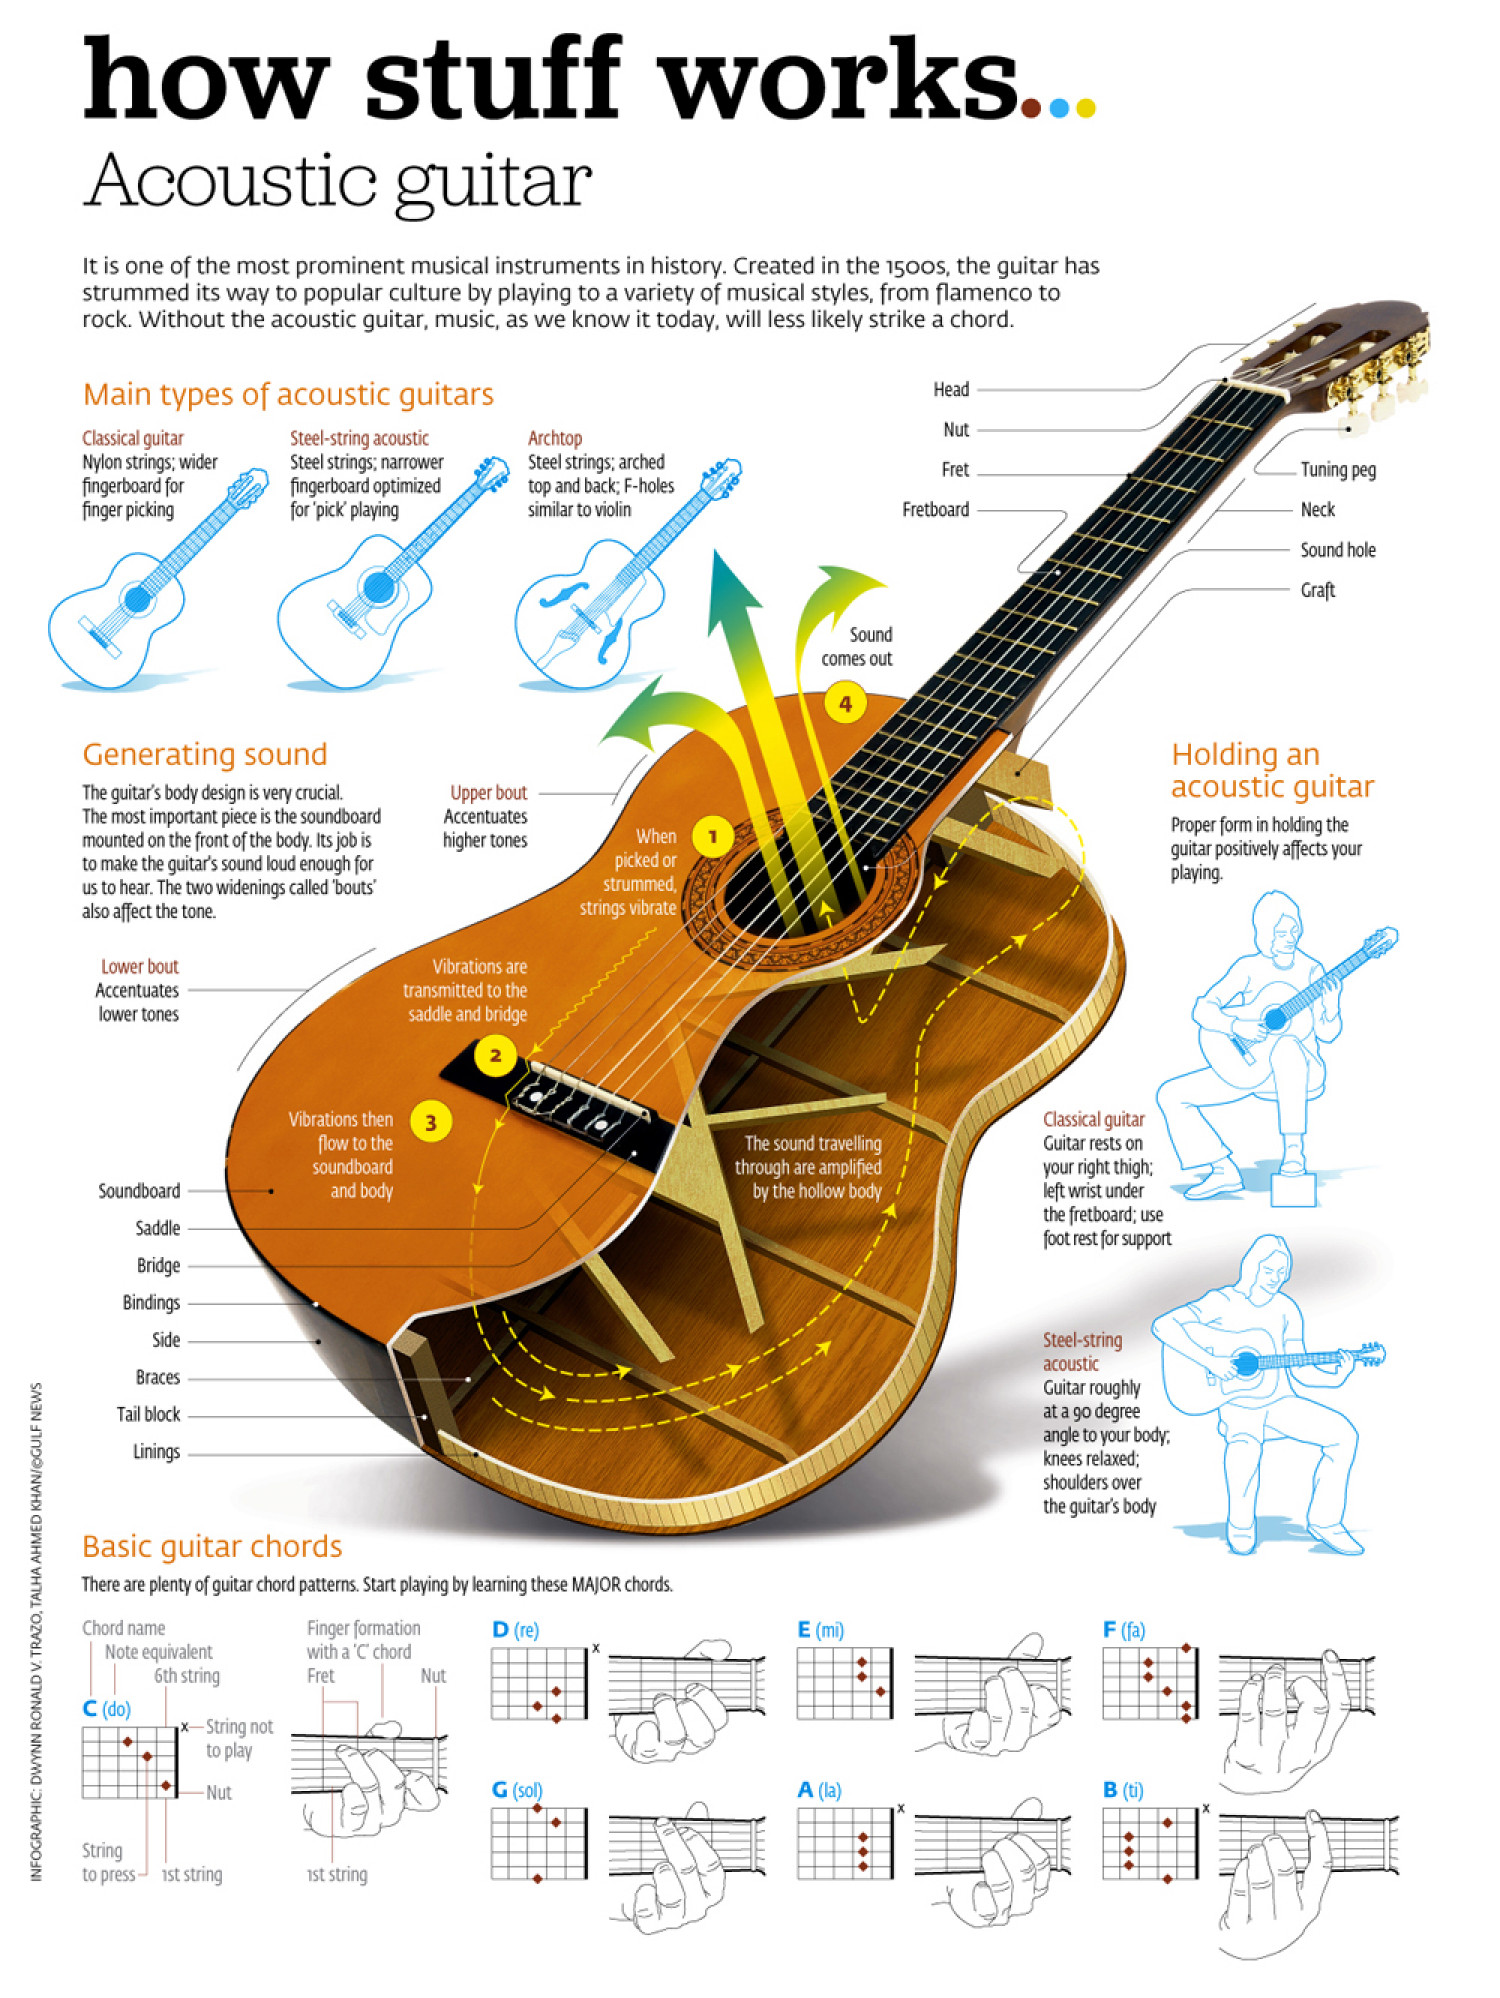 The Acoustic Guitar Visual